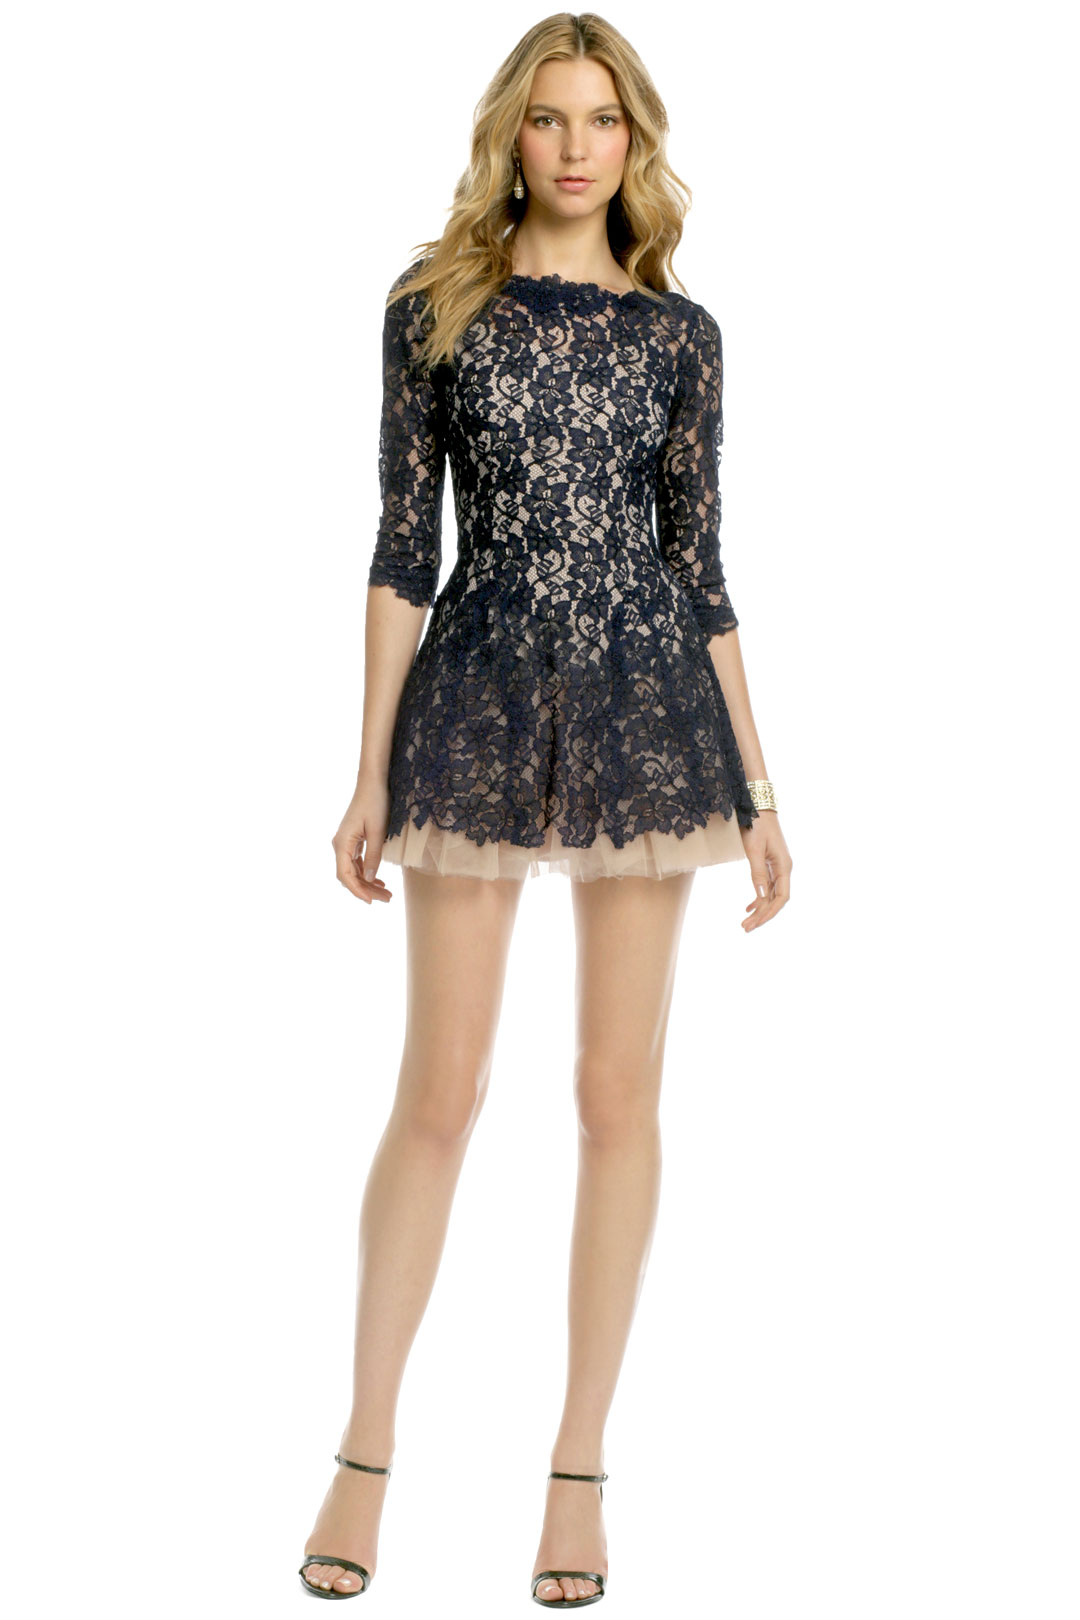 Sweet Talk Dress by nha khanh at $44.99 | Rent The Runway